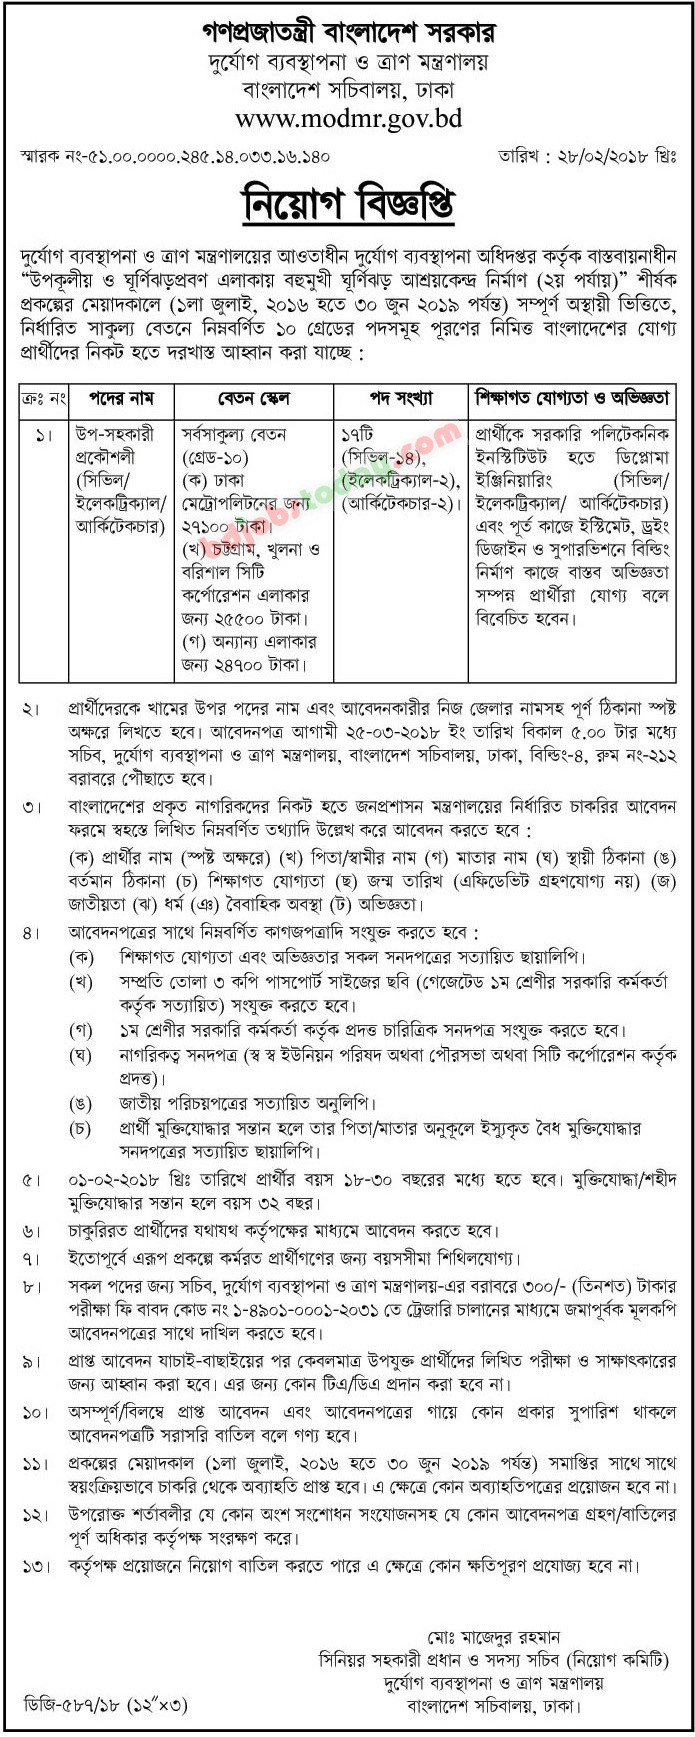 Ministry of Disaster Management and Relief jobs